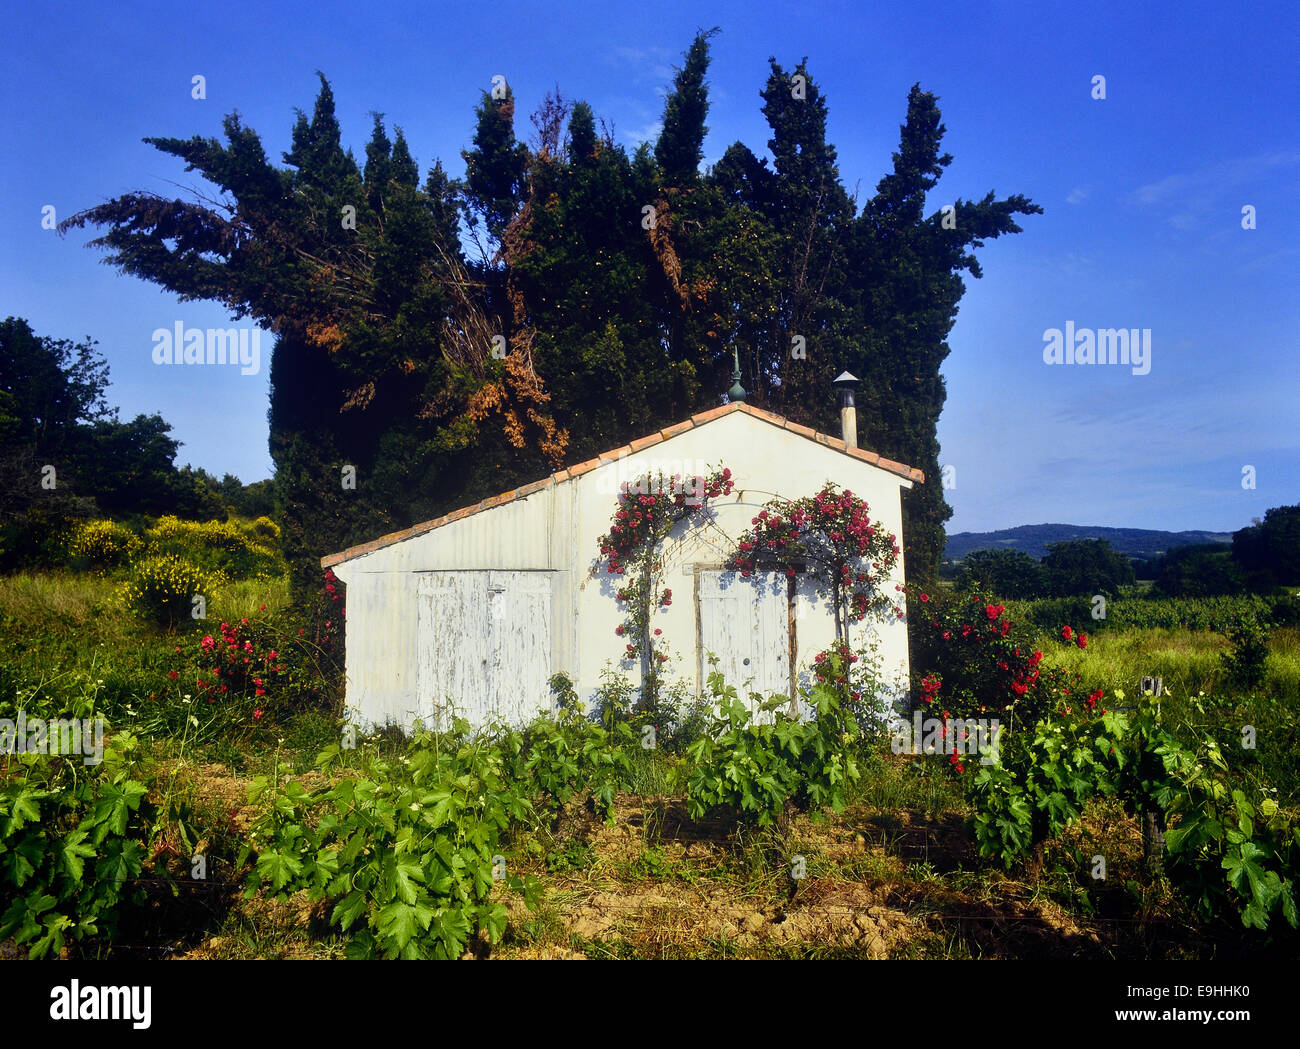 White hut with climbing red roses in a Vineyard. Languedoc-Roussillon region Region. France - Stock Image